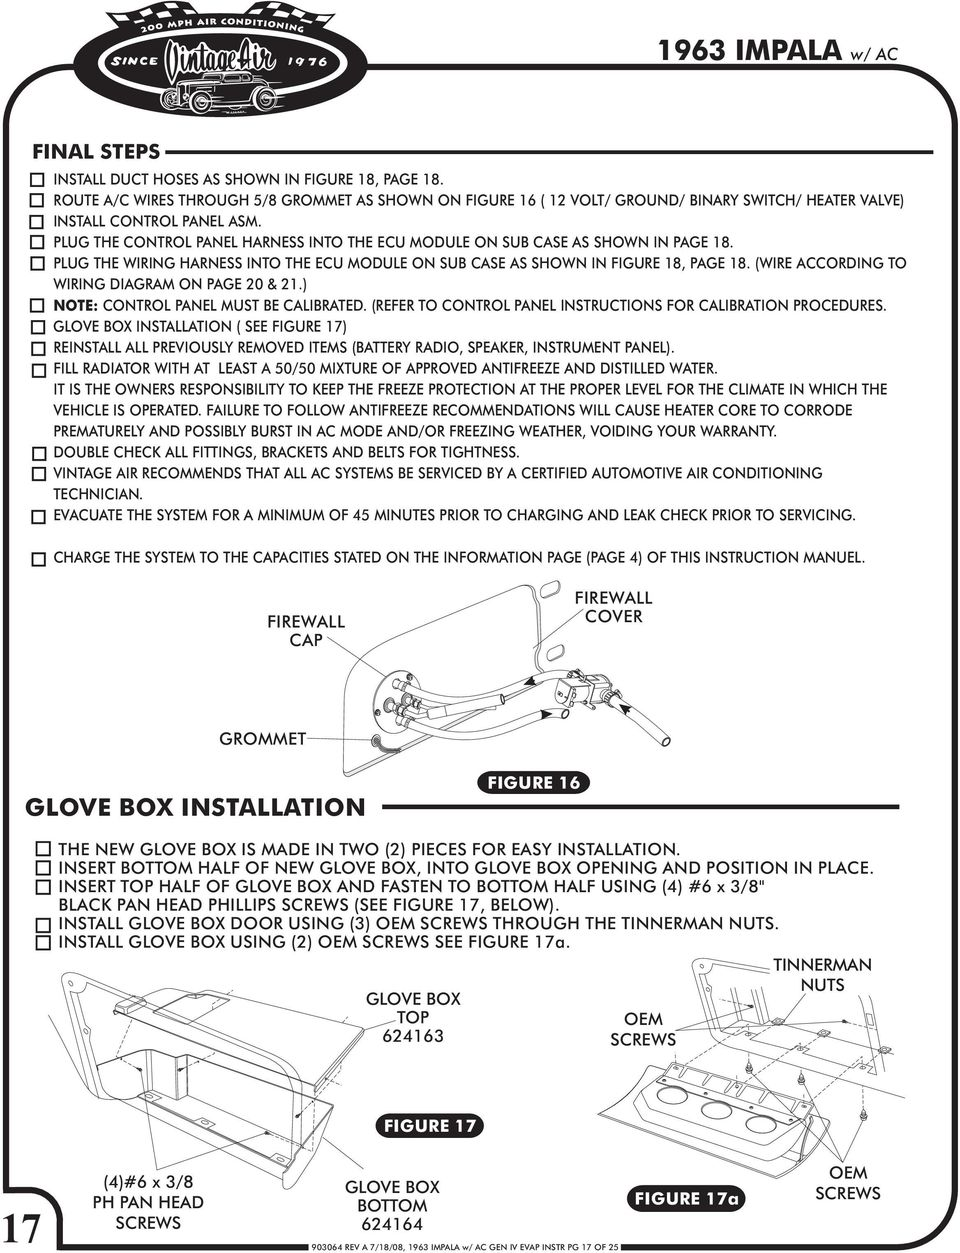 hight resolution of  wire according to wiring diagram on page 20 21 note control